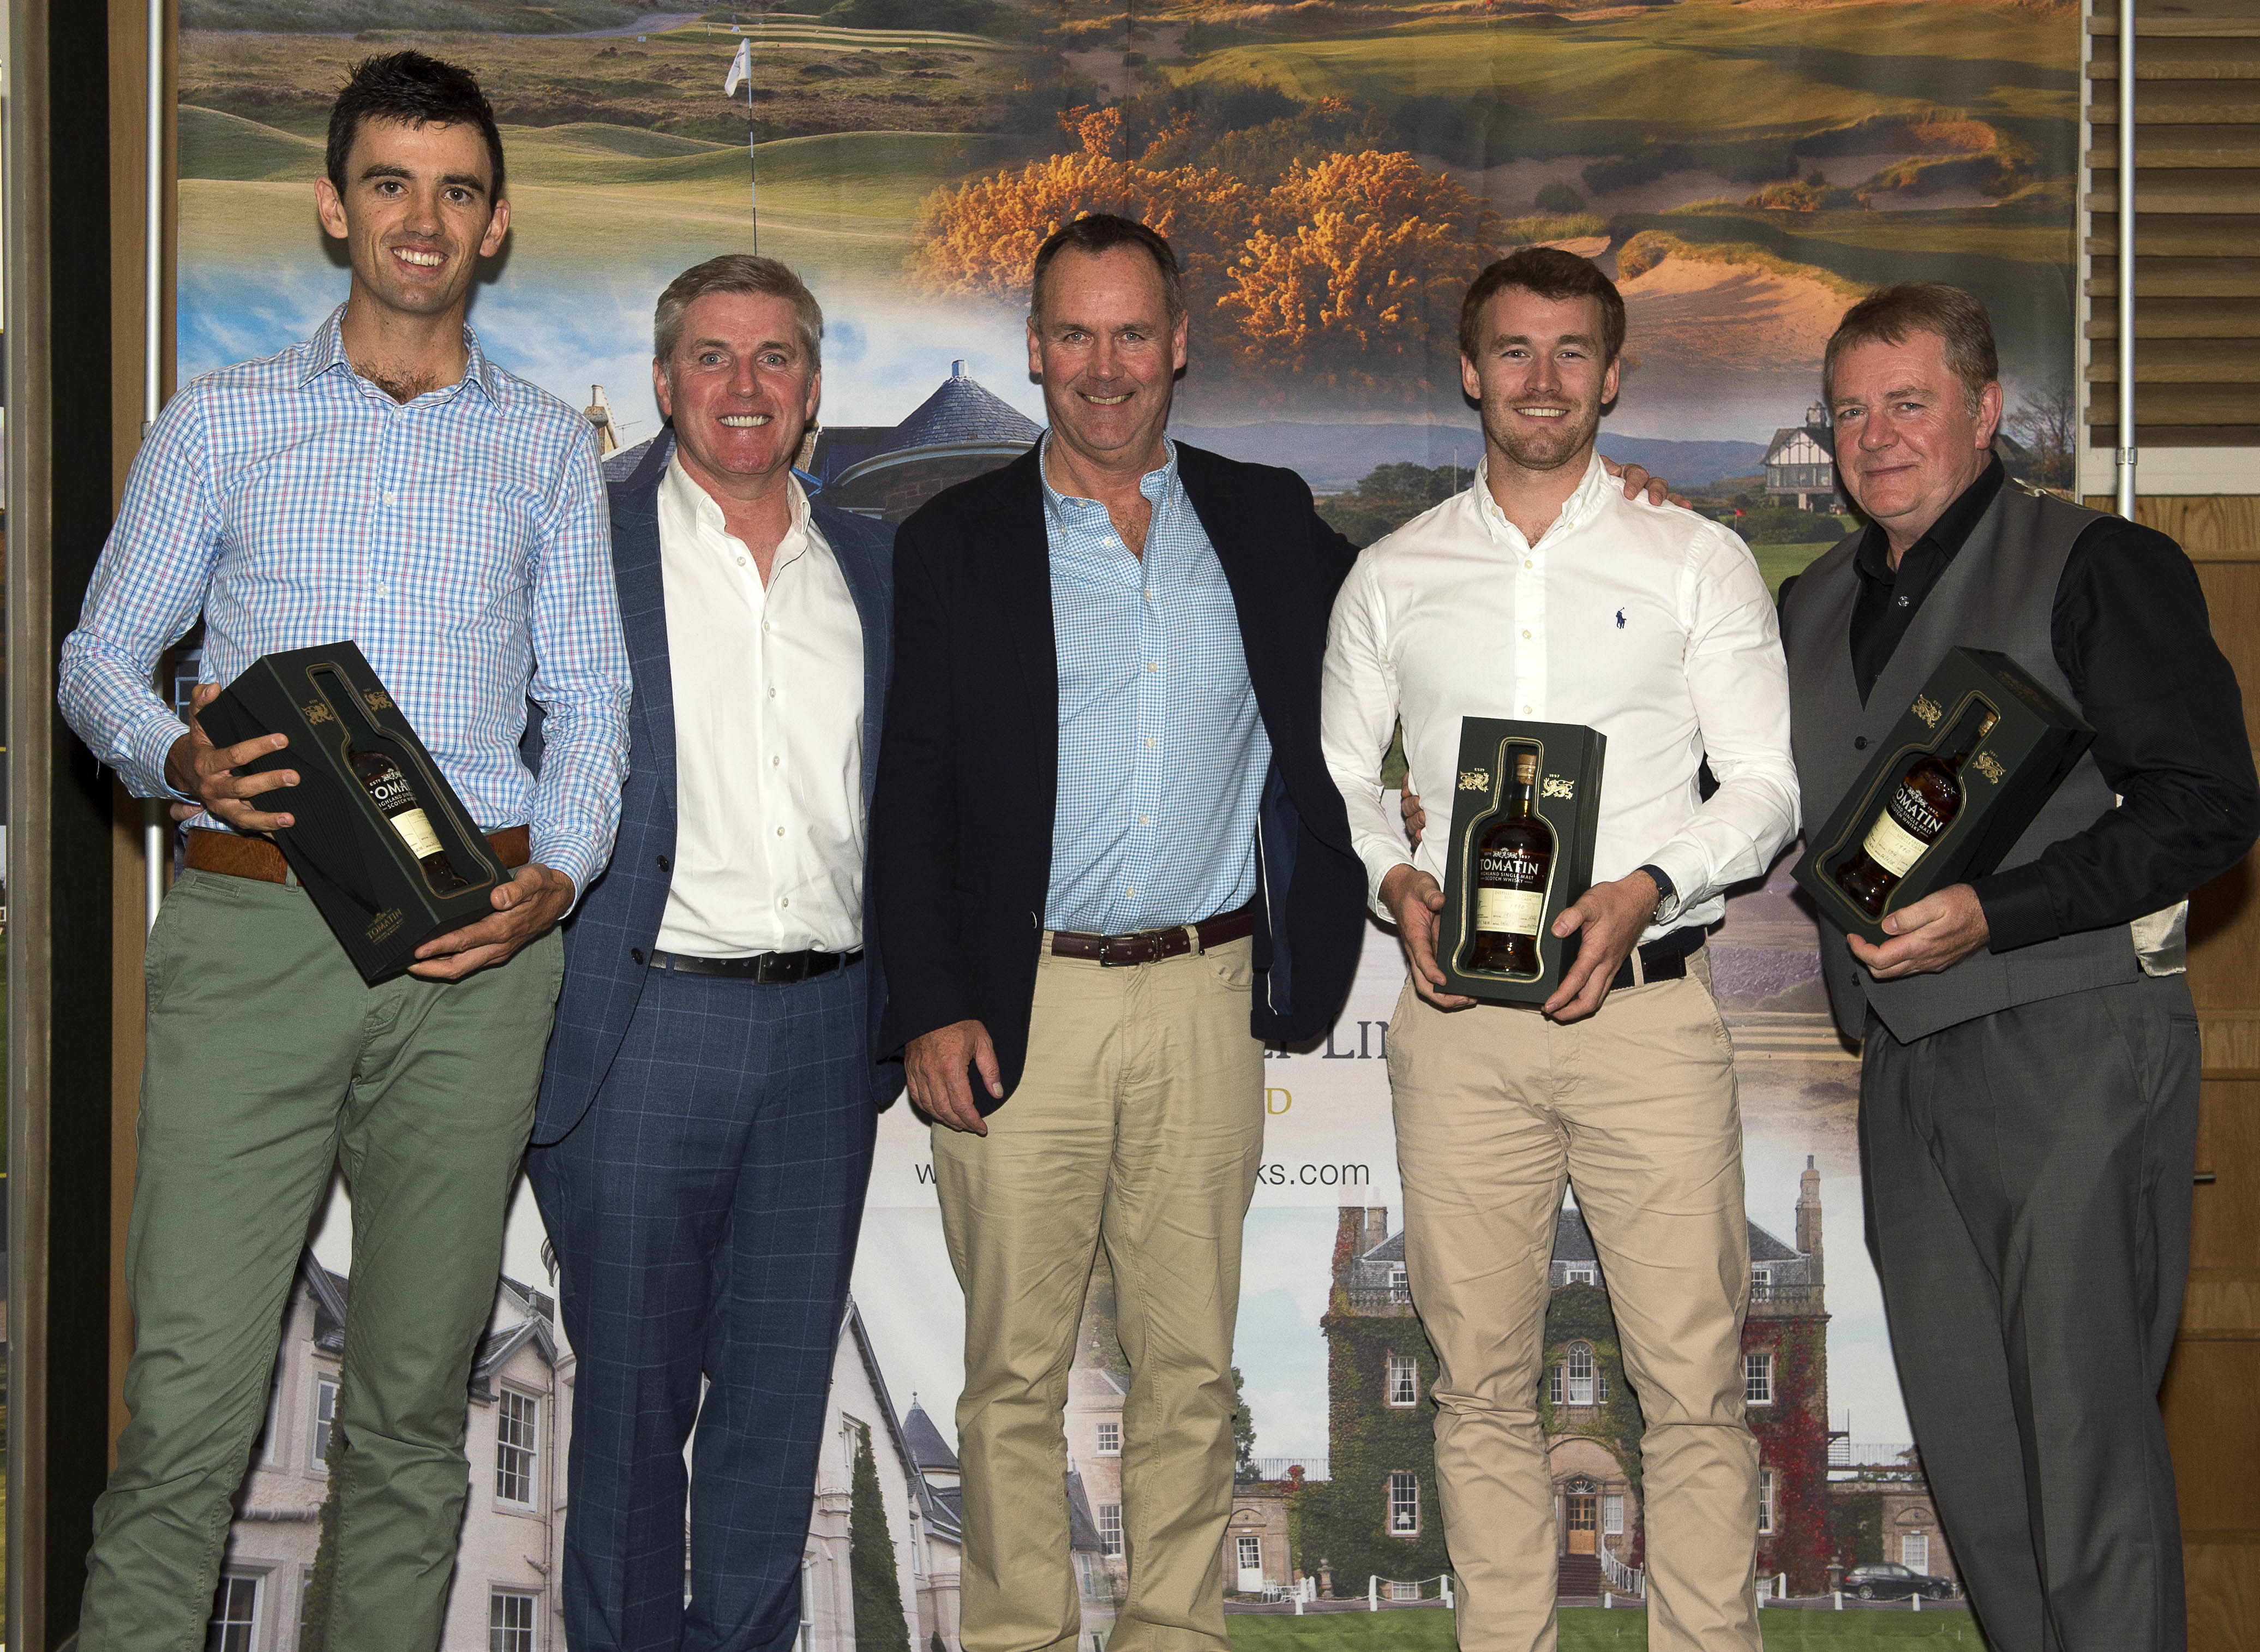 Team winners Glasgow Whisky2 with Austin Carey (Blue Group, second left) and Stuart McColm (HGL, centre)